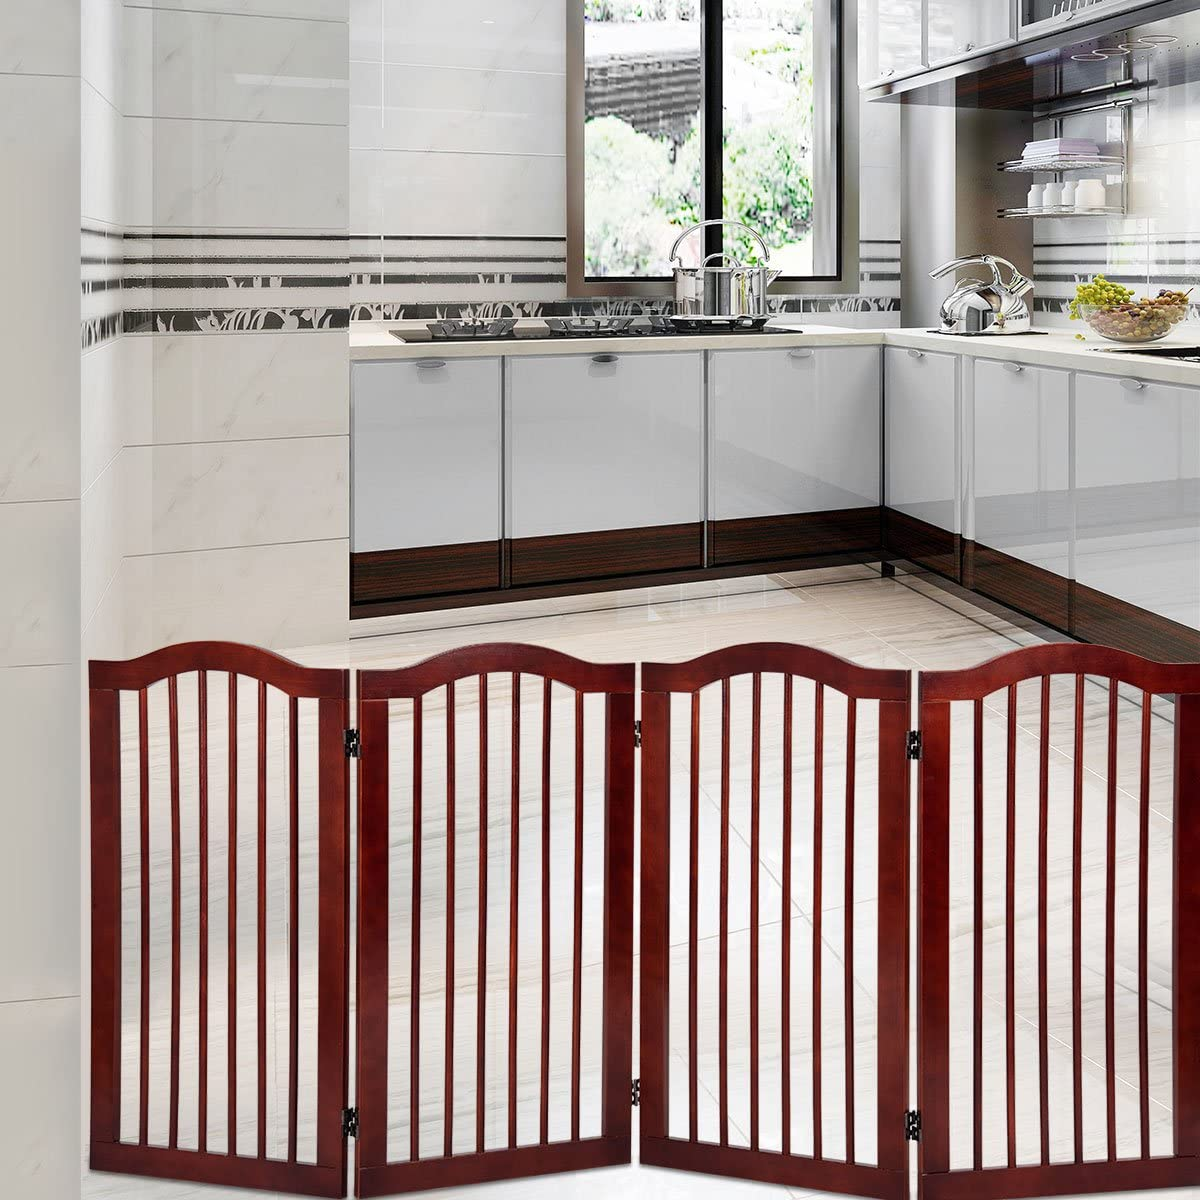 24 Giantex 3 Panel Wood Dog Gate Pet Fence Barrier Folding Freestanding Doorway Fence Doggie Puppy Fencing Enclosure System Indoor Safety Gate for Dogs